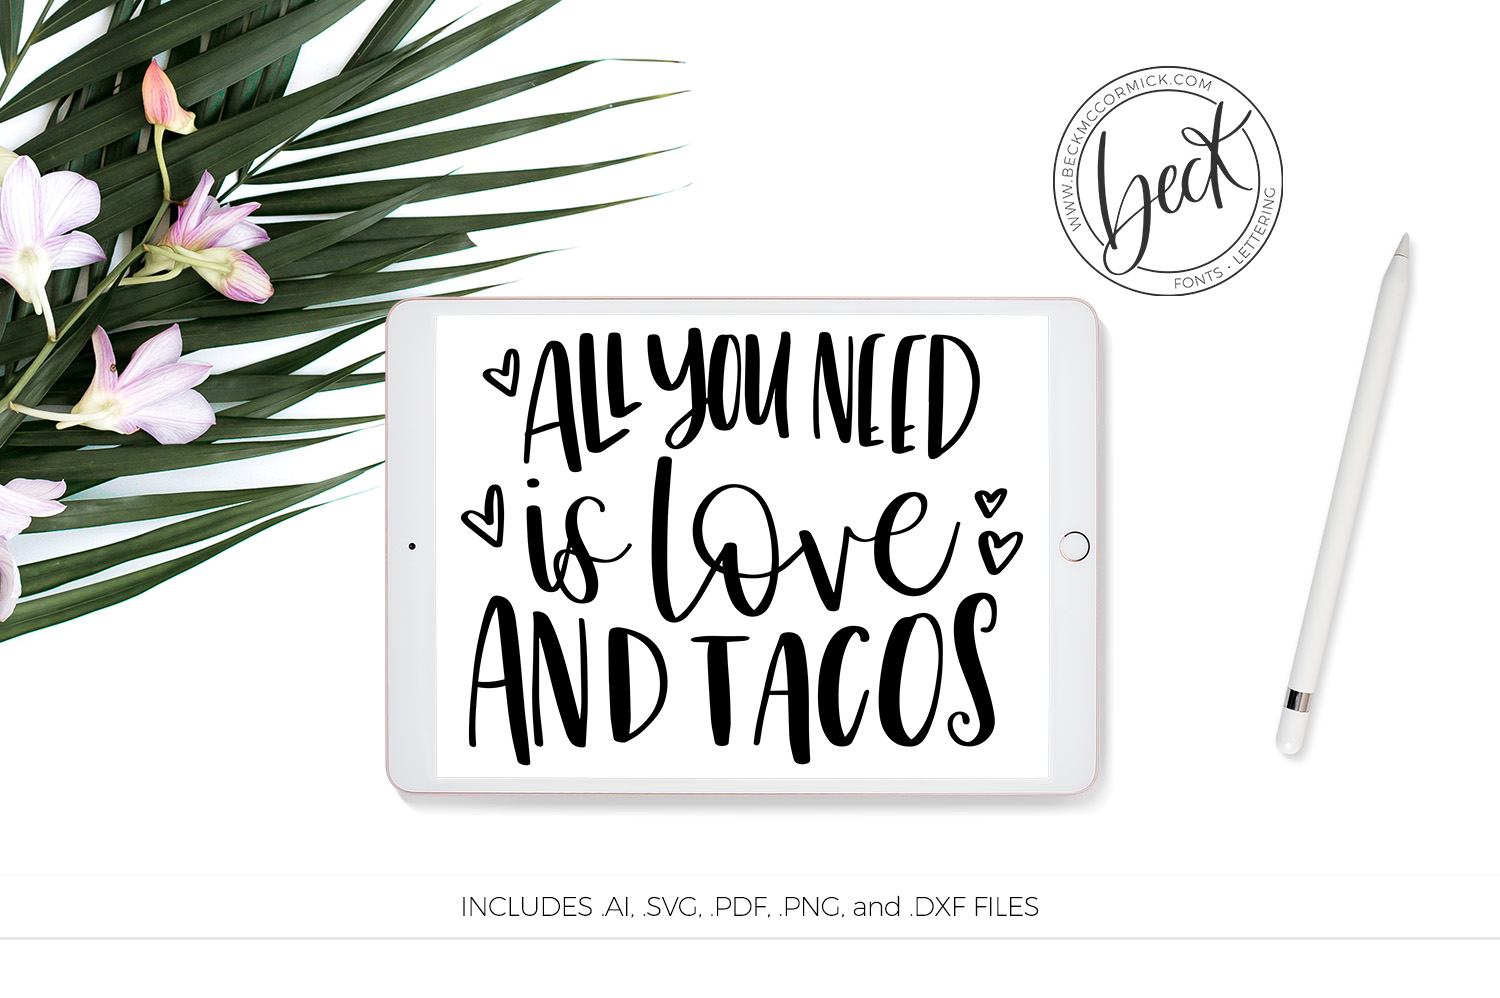 All You Need Is Love Tacos Graphic By Beckmccormick Creative Fabrica